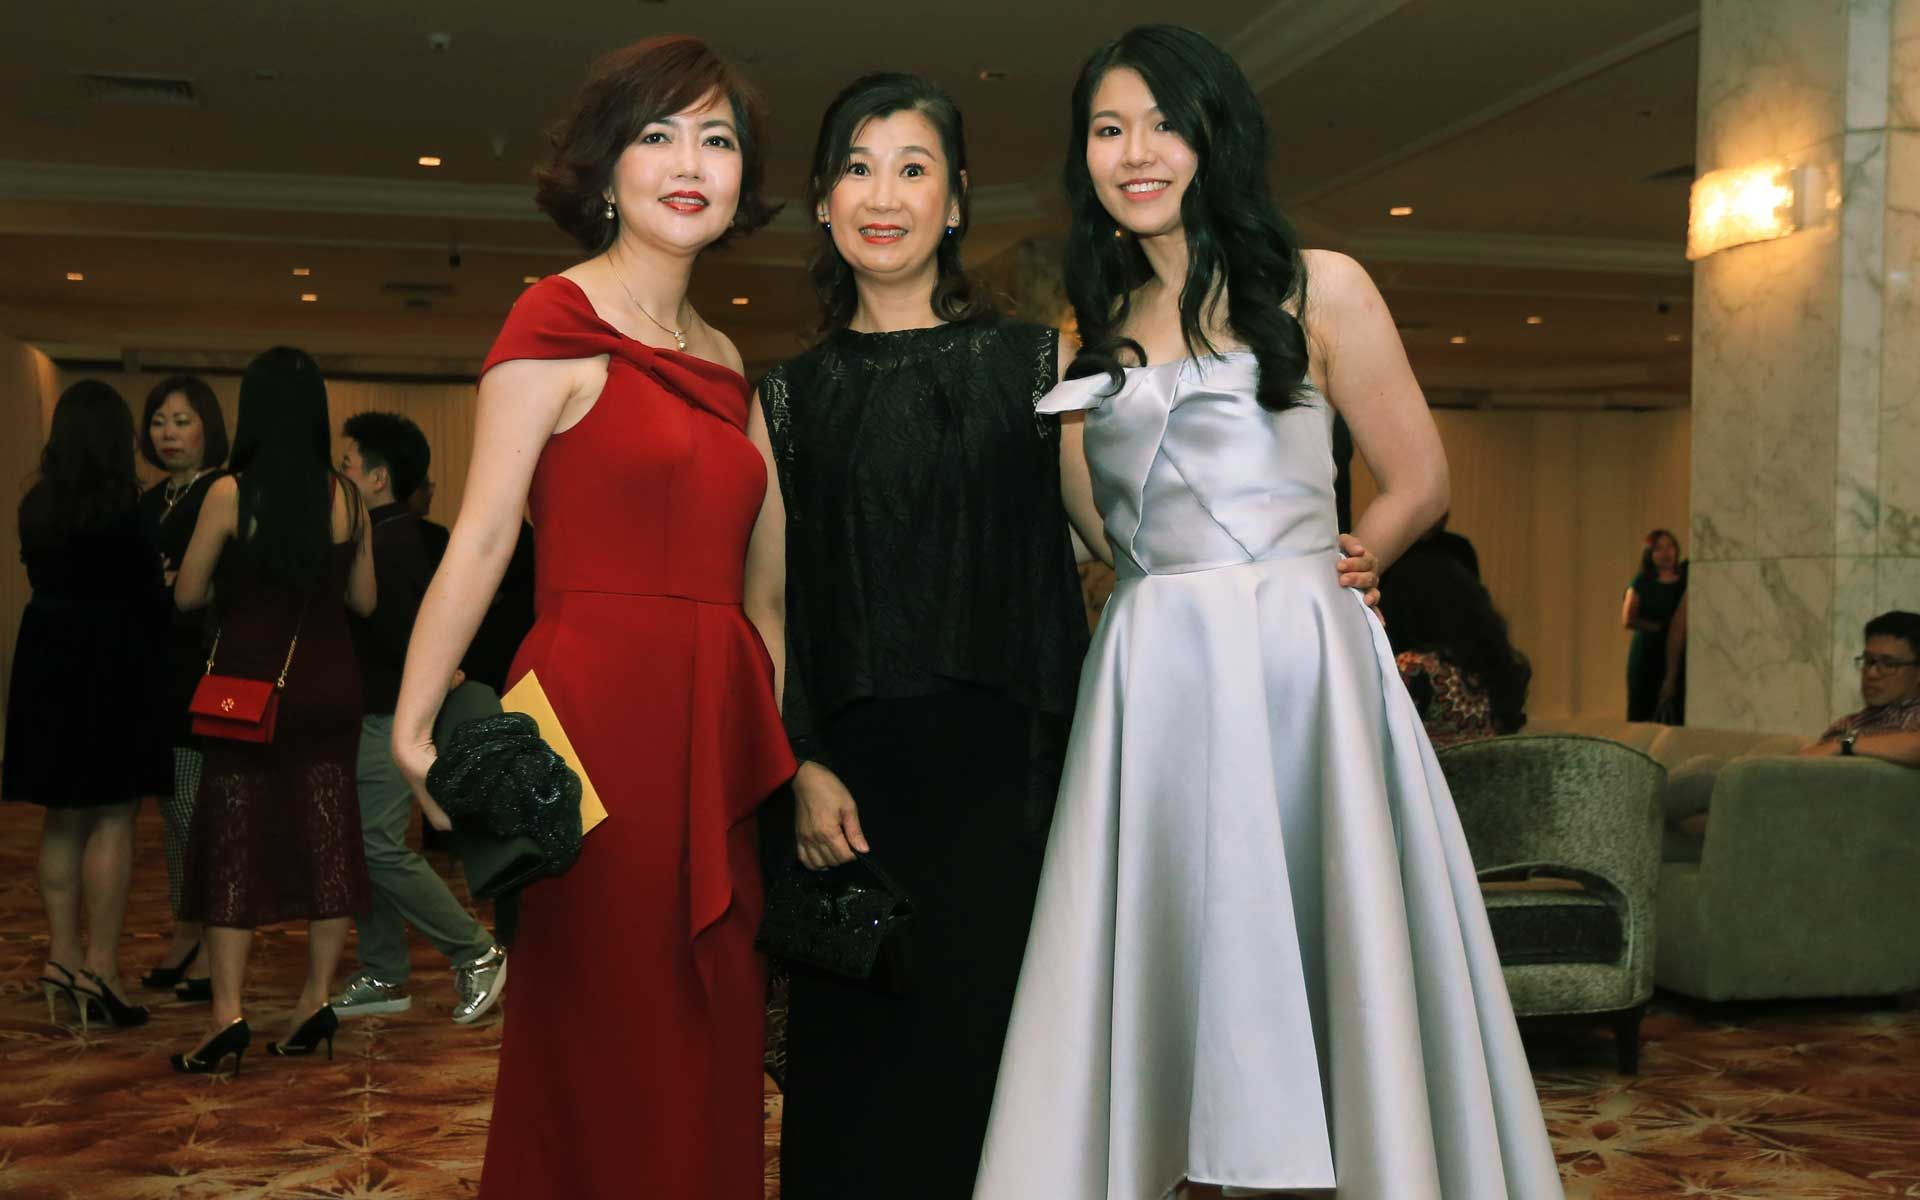 Liew Ivy, Helen Hoo and Jess Yong